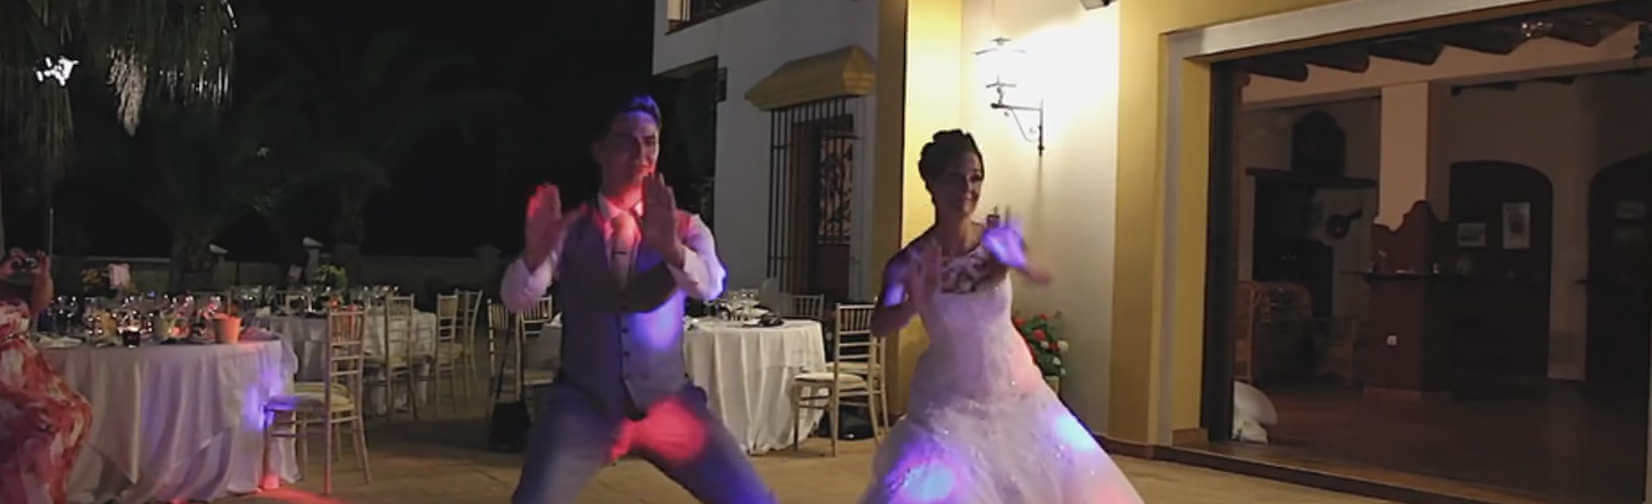 If you've ever dreamed of performing a choreographed dance at your wedding . . .